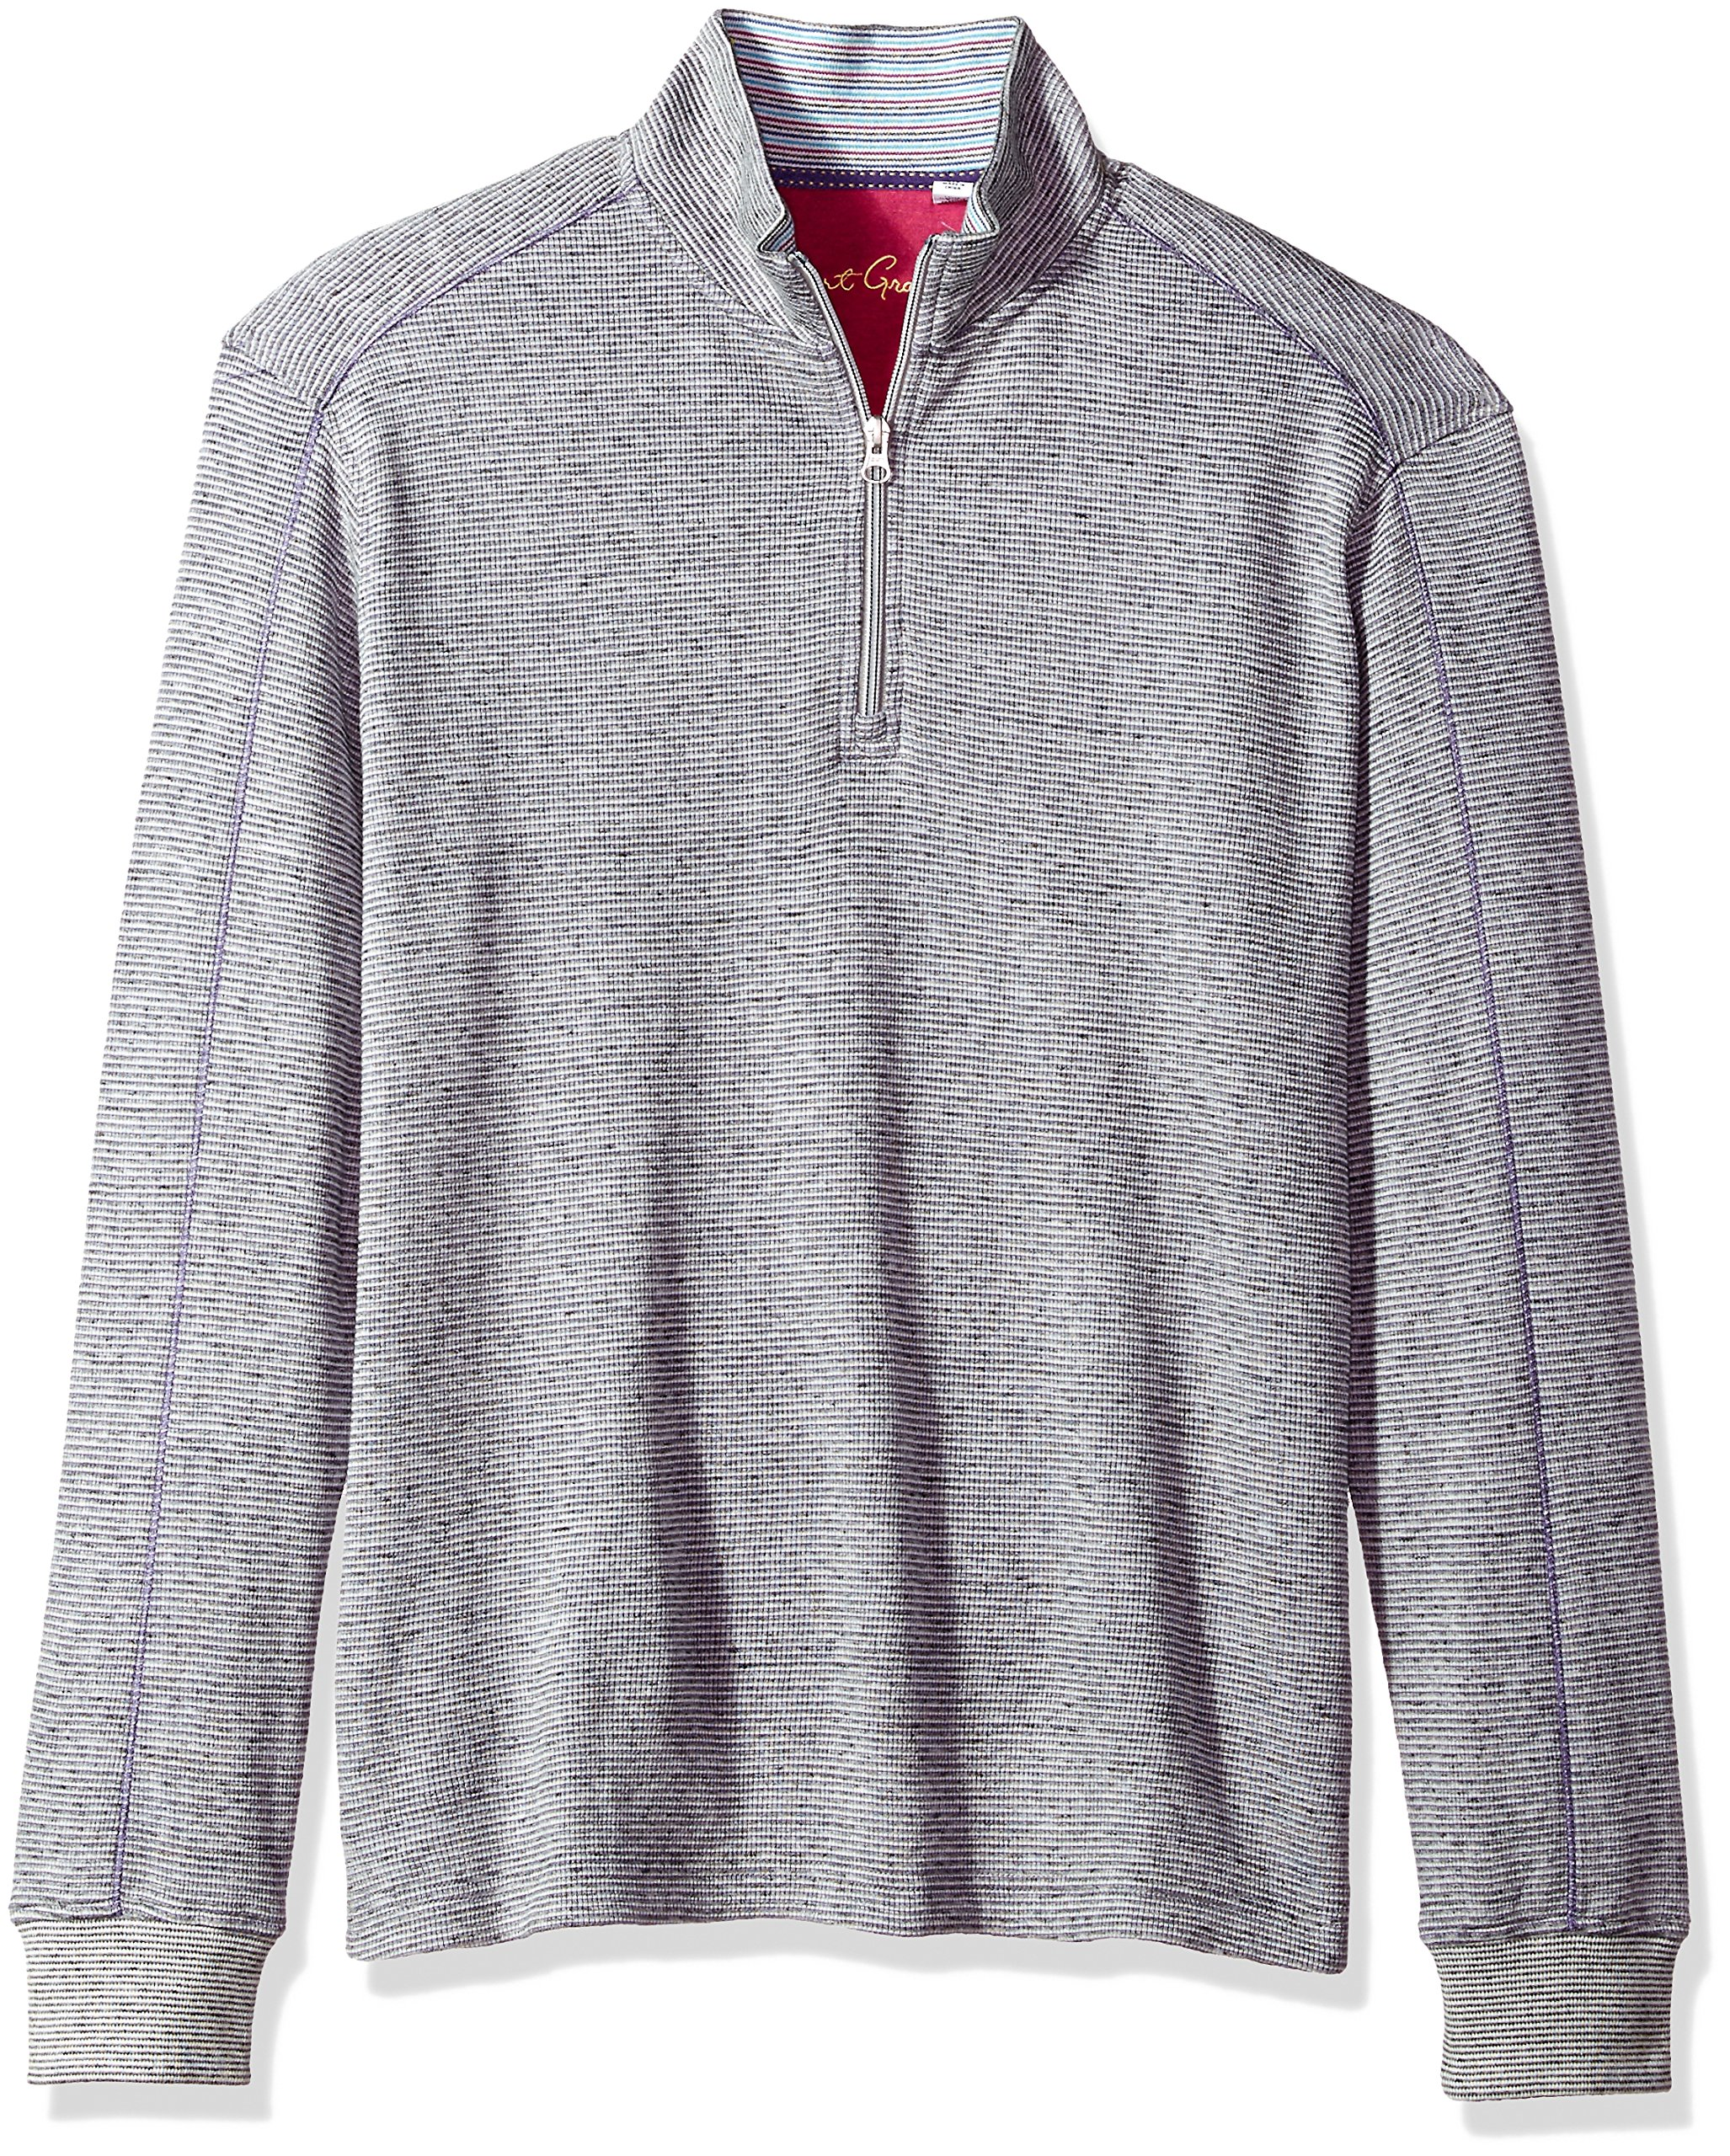 Robert Graham Men's Easy Rider Cotton 1/4 Zip Knit, Heather Charcoal, 2XLARGE